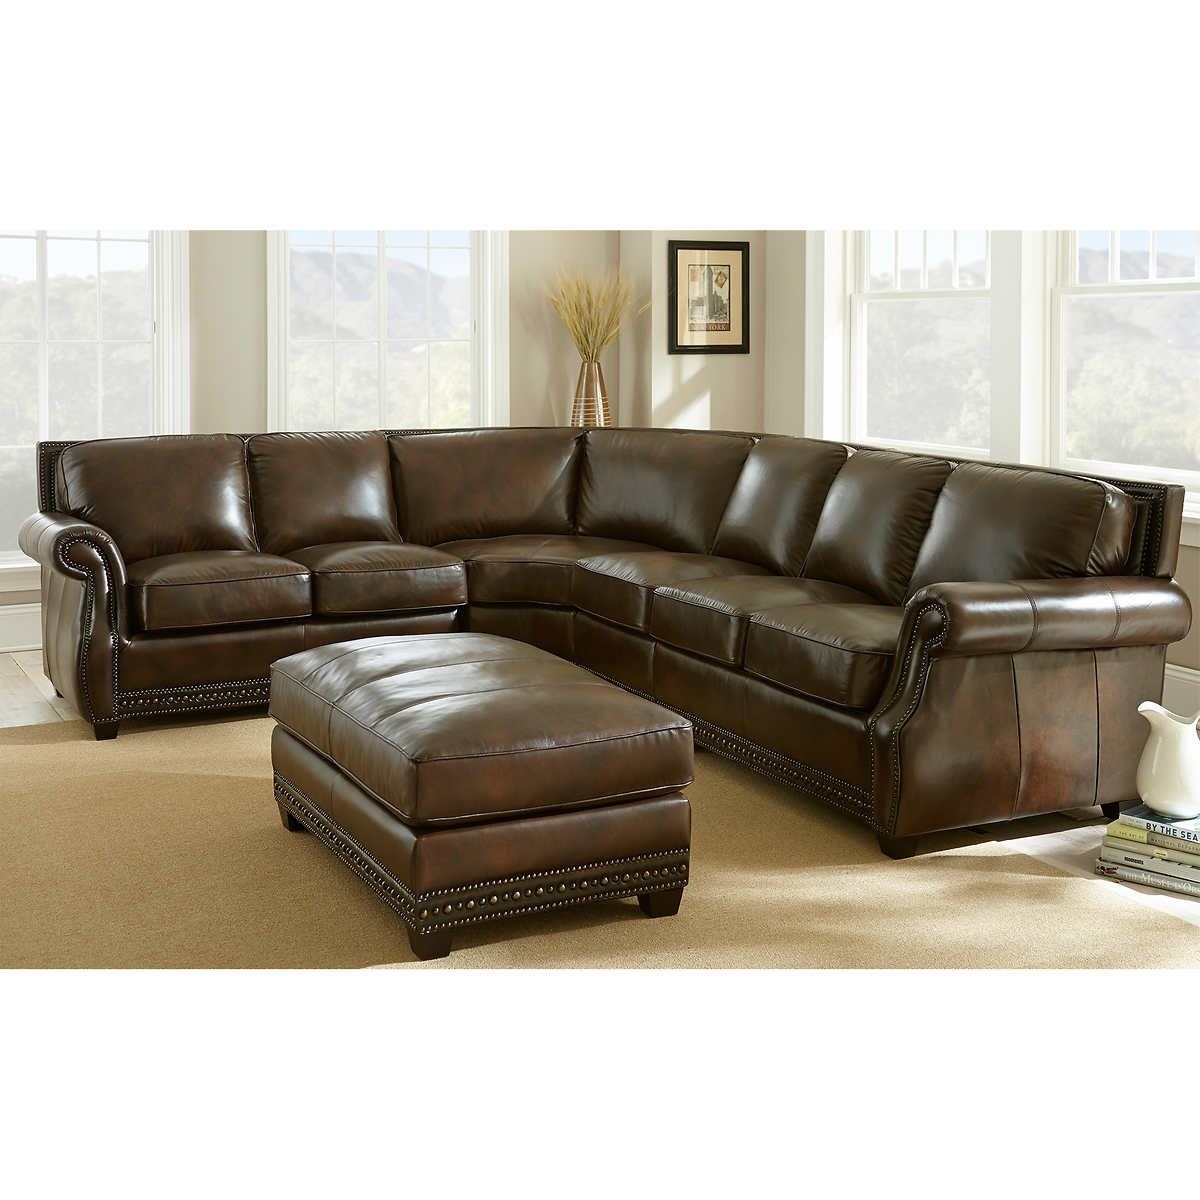 Awesome Leather Couch Sectional , New Leather Couch Sectional 64 Intended For Greenville Sc Sectional Sofas (View 10 of 10)